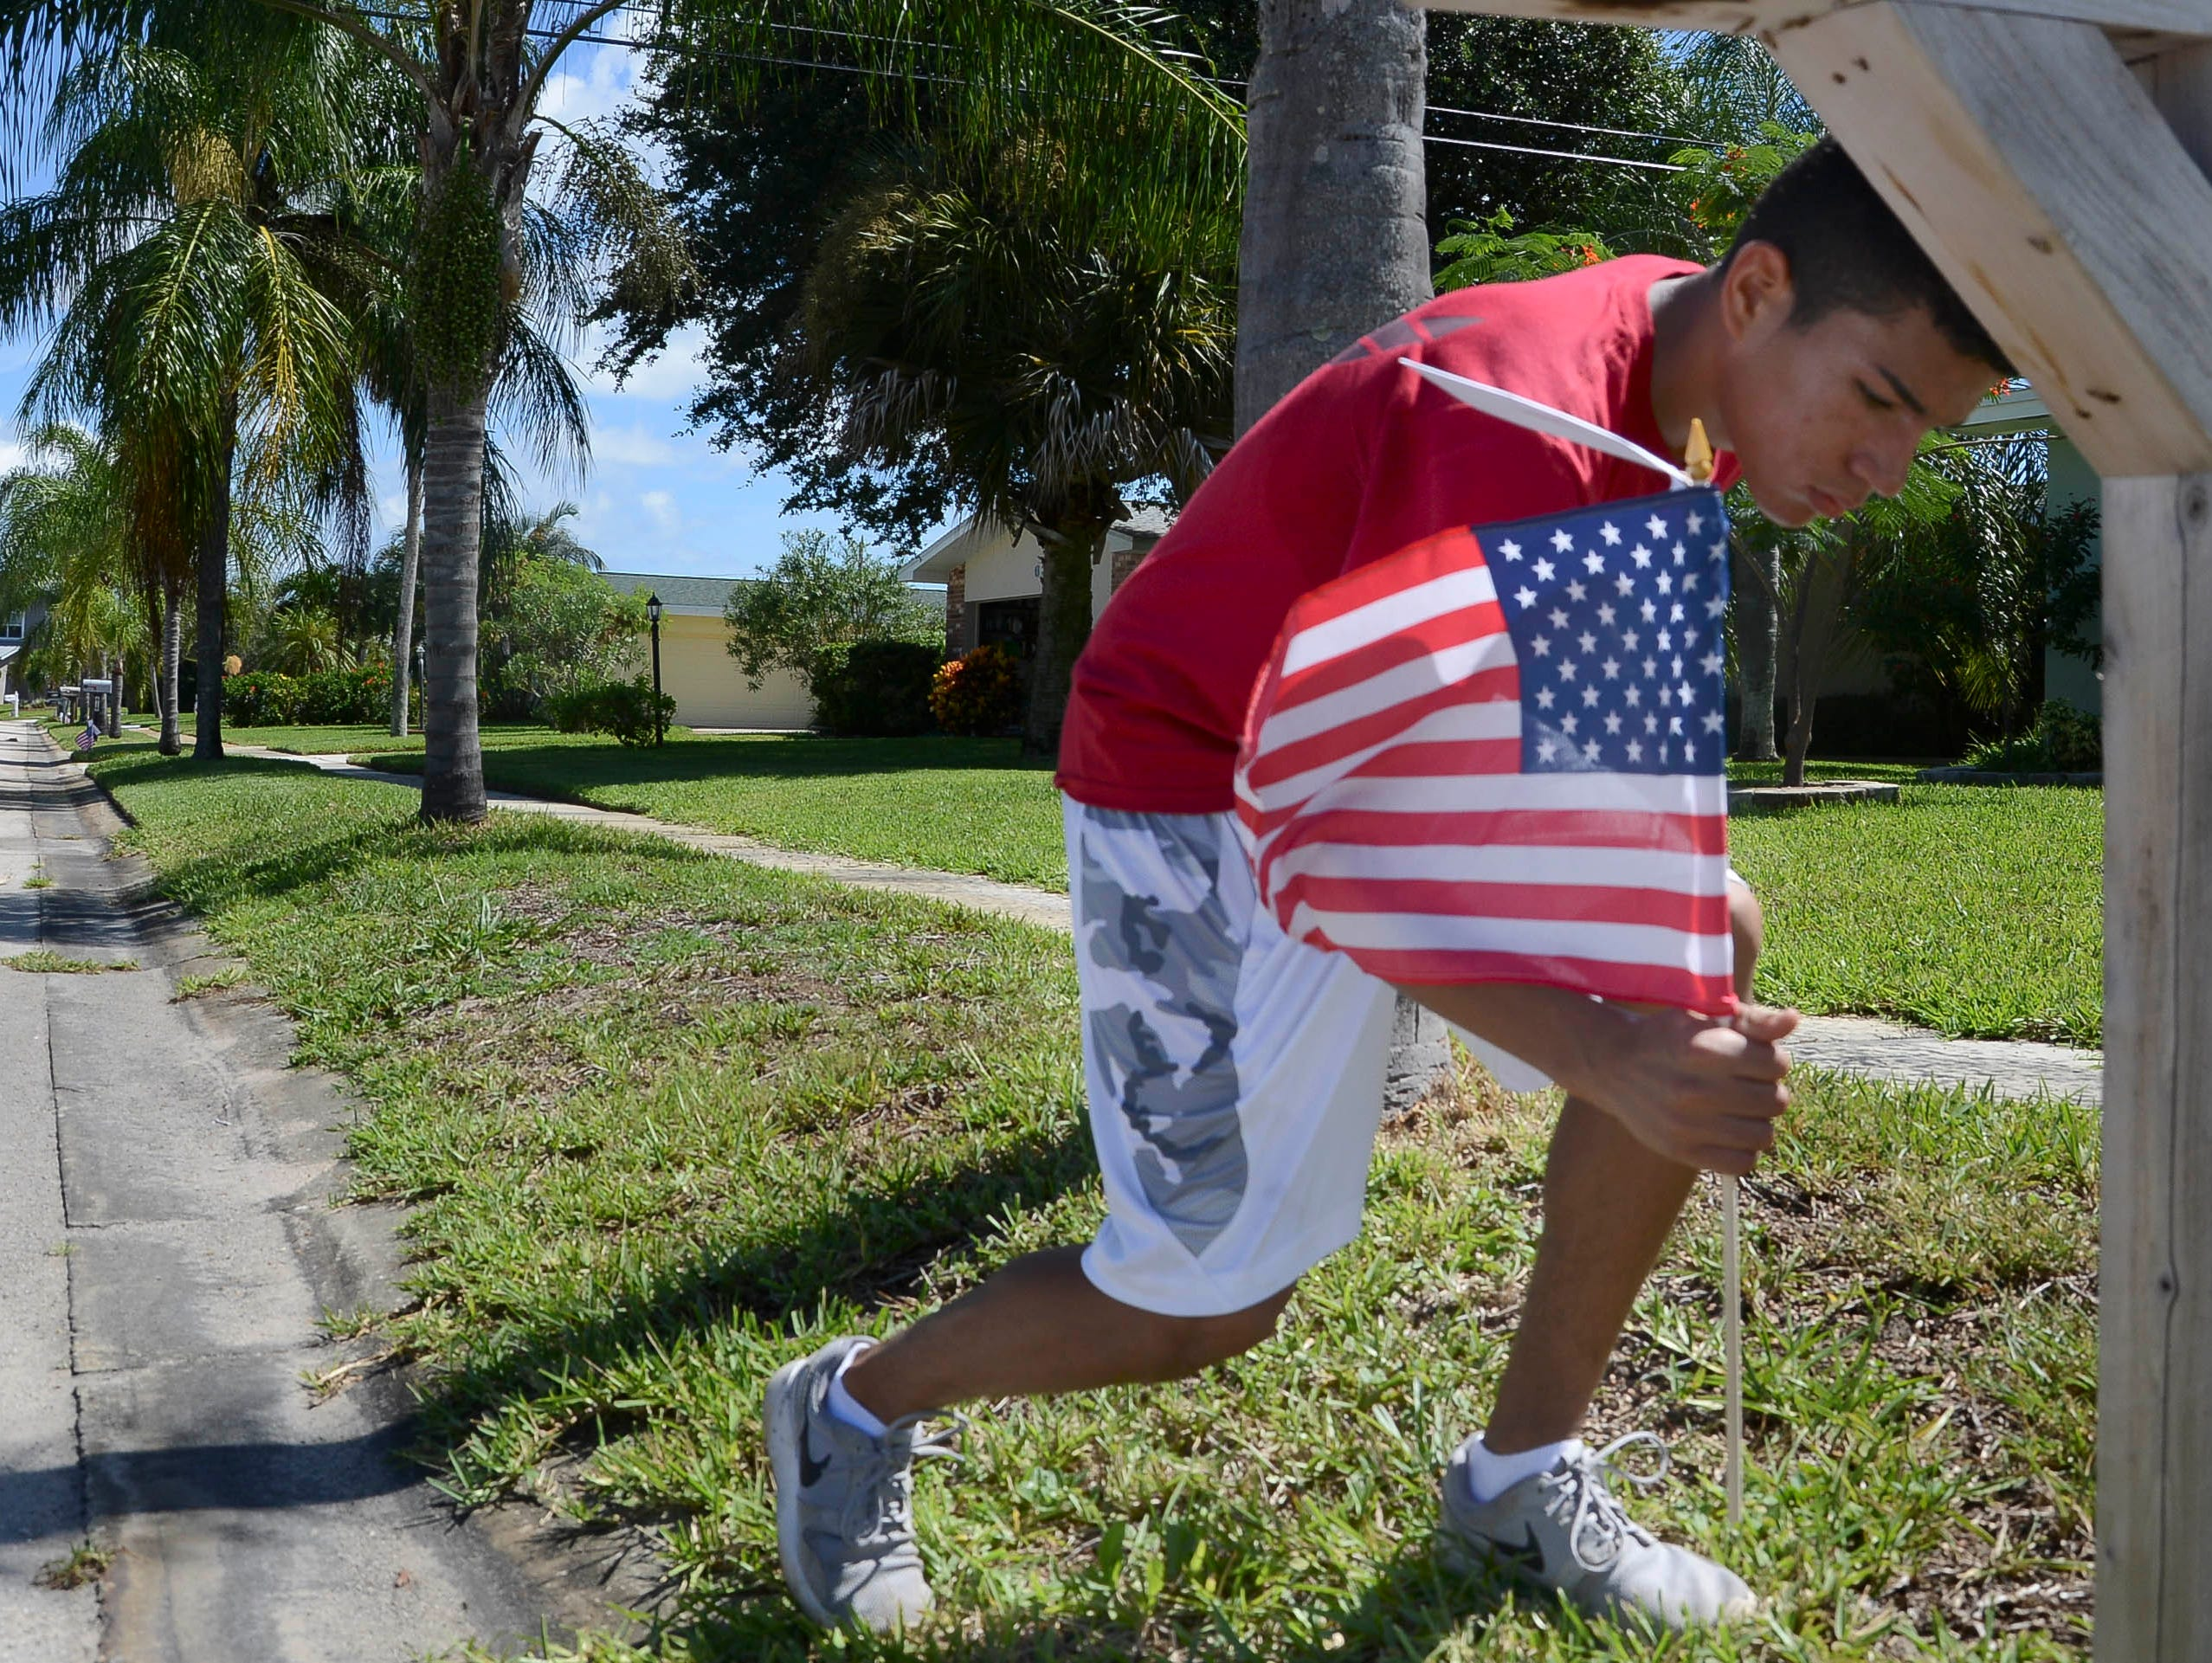 Kobe Thompson helps set out American flags Thursday morning in Satellite Beach. Students from Satellite High's football and ROTC squads help distribute American flags as part of a fundraiser for the school.